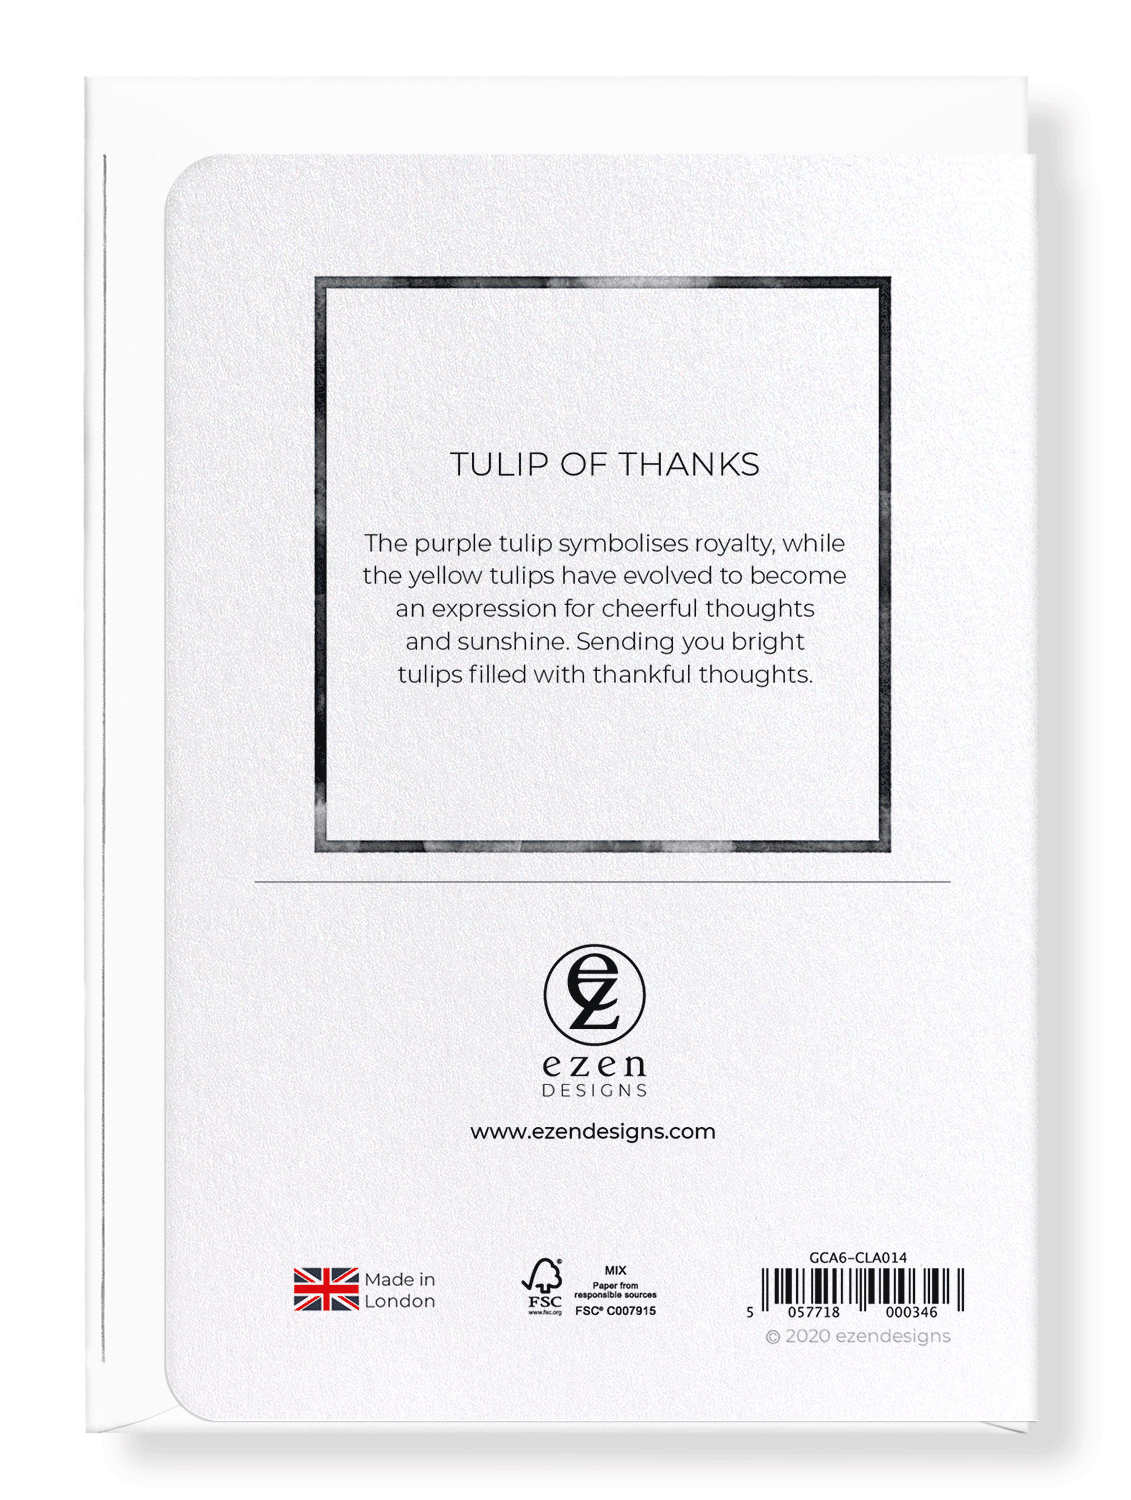 Ezen Designs - Tulip of thanks - Greeting Card - Back